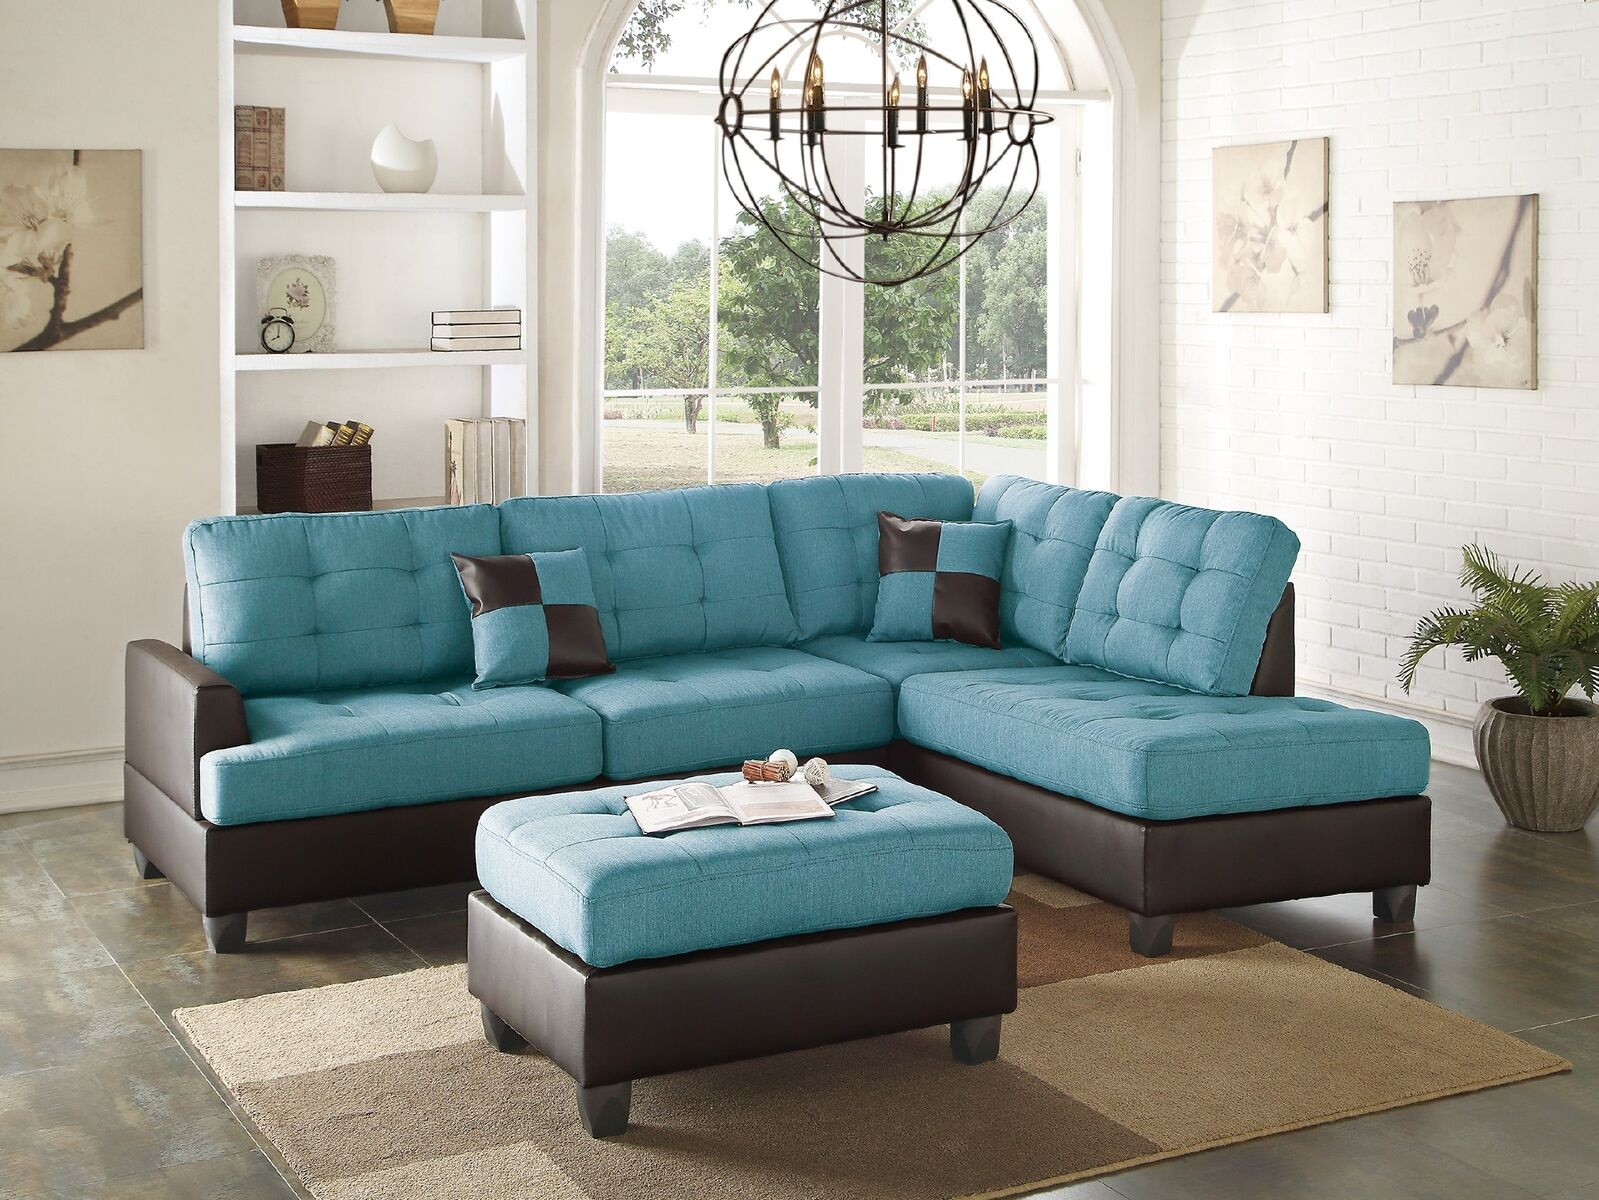 Swell Mathew Sectional Sofa Set Contemporary Teal Linen Like Fabric Sofa Chaise Ottoman Tufted Comfort Couch Living Room Furniture Ibusinesslaw Wood Chair Design Ideas Ibusinesslaworg